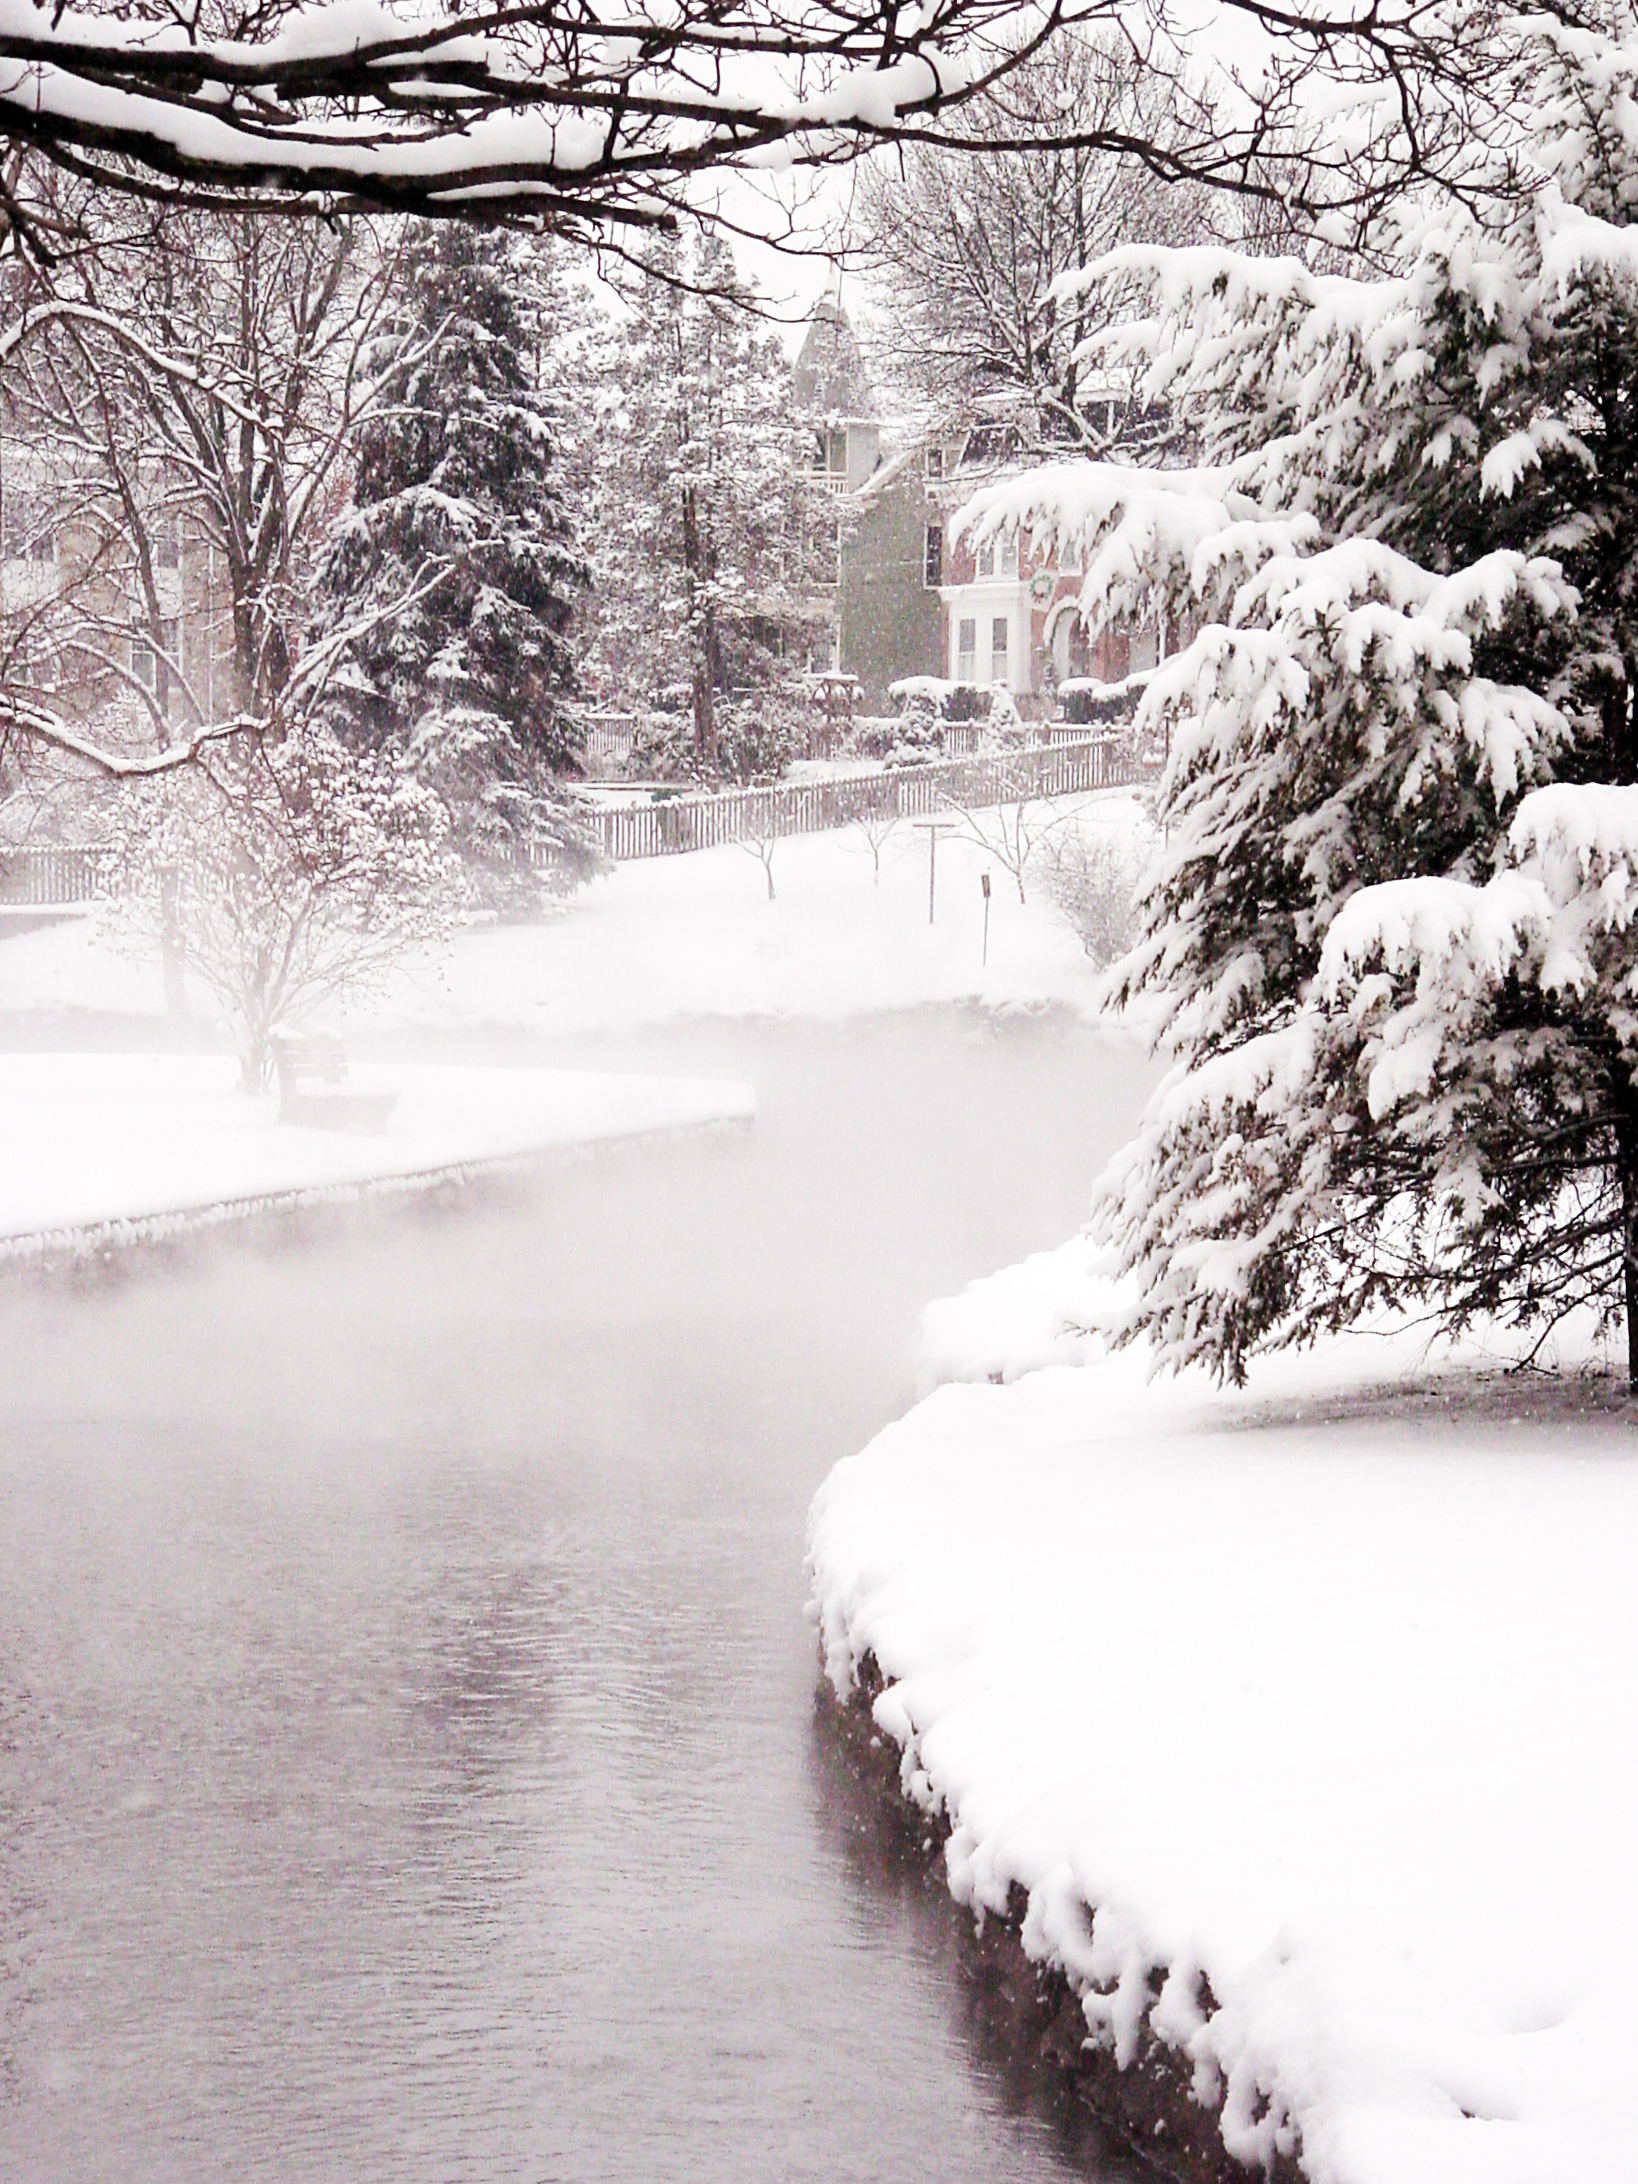 Boiling Springs In The Winter